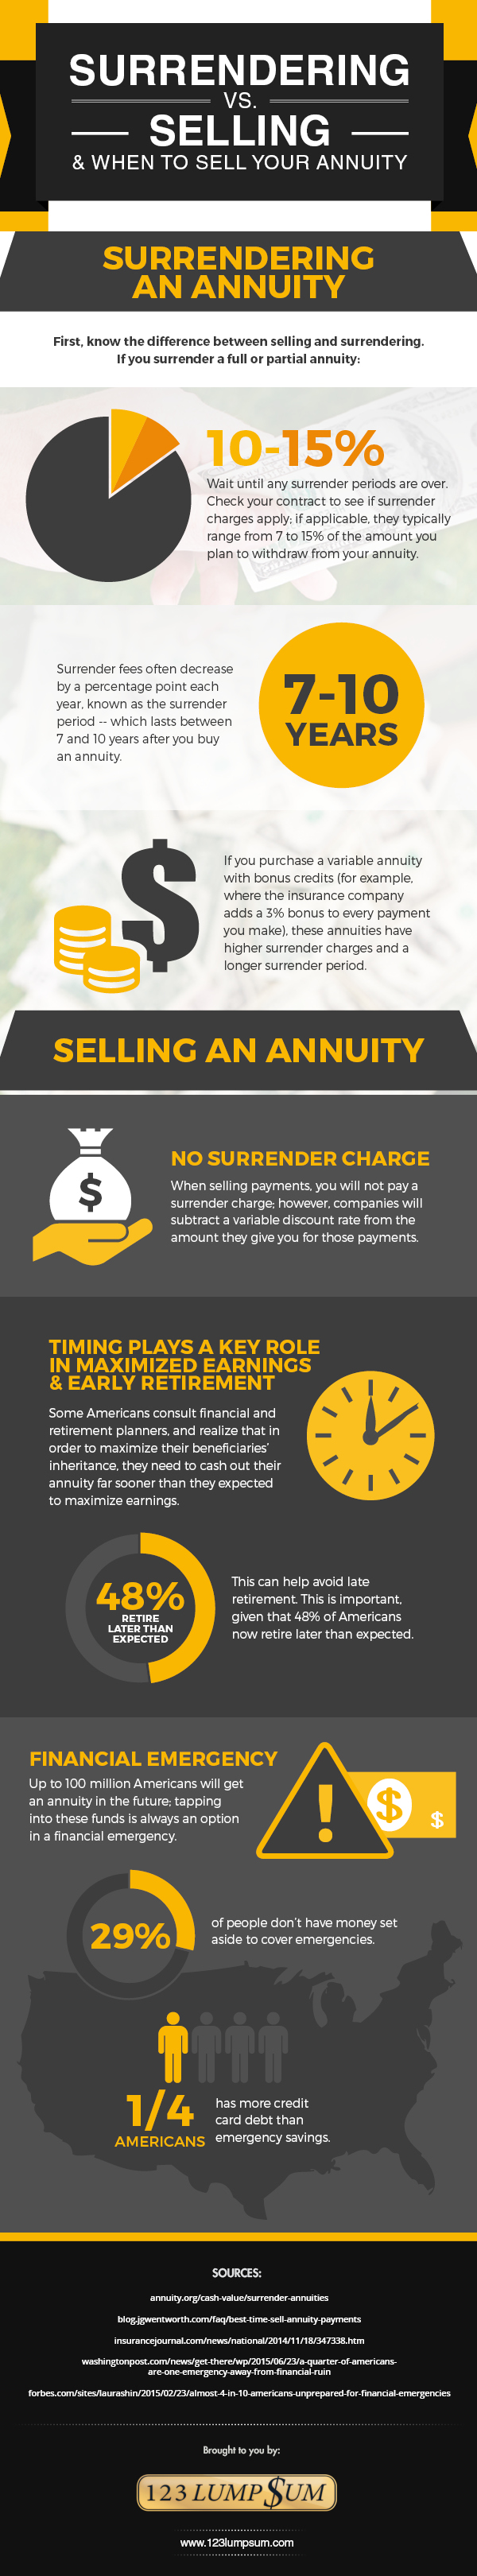 The Critical Difference Between Surrendering And Selling An Annuity